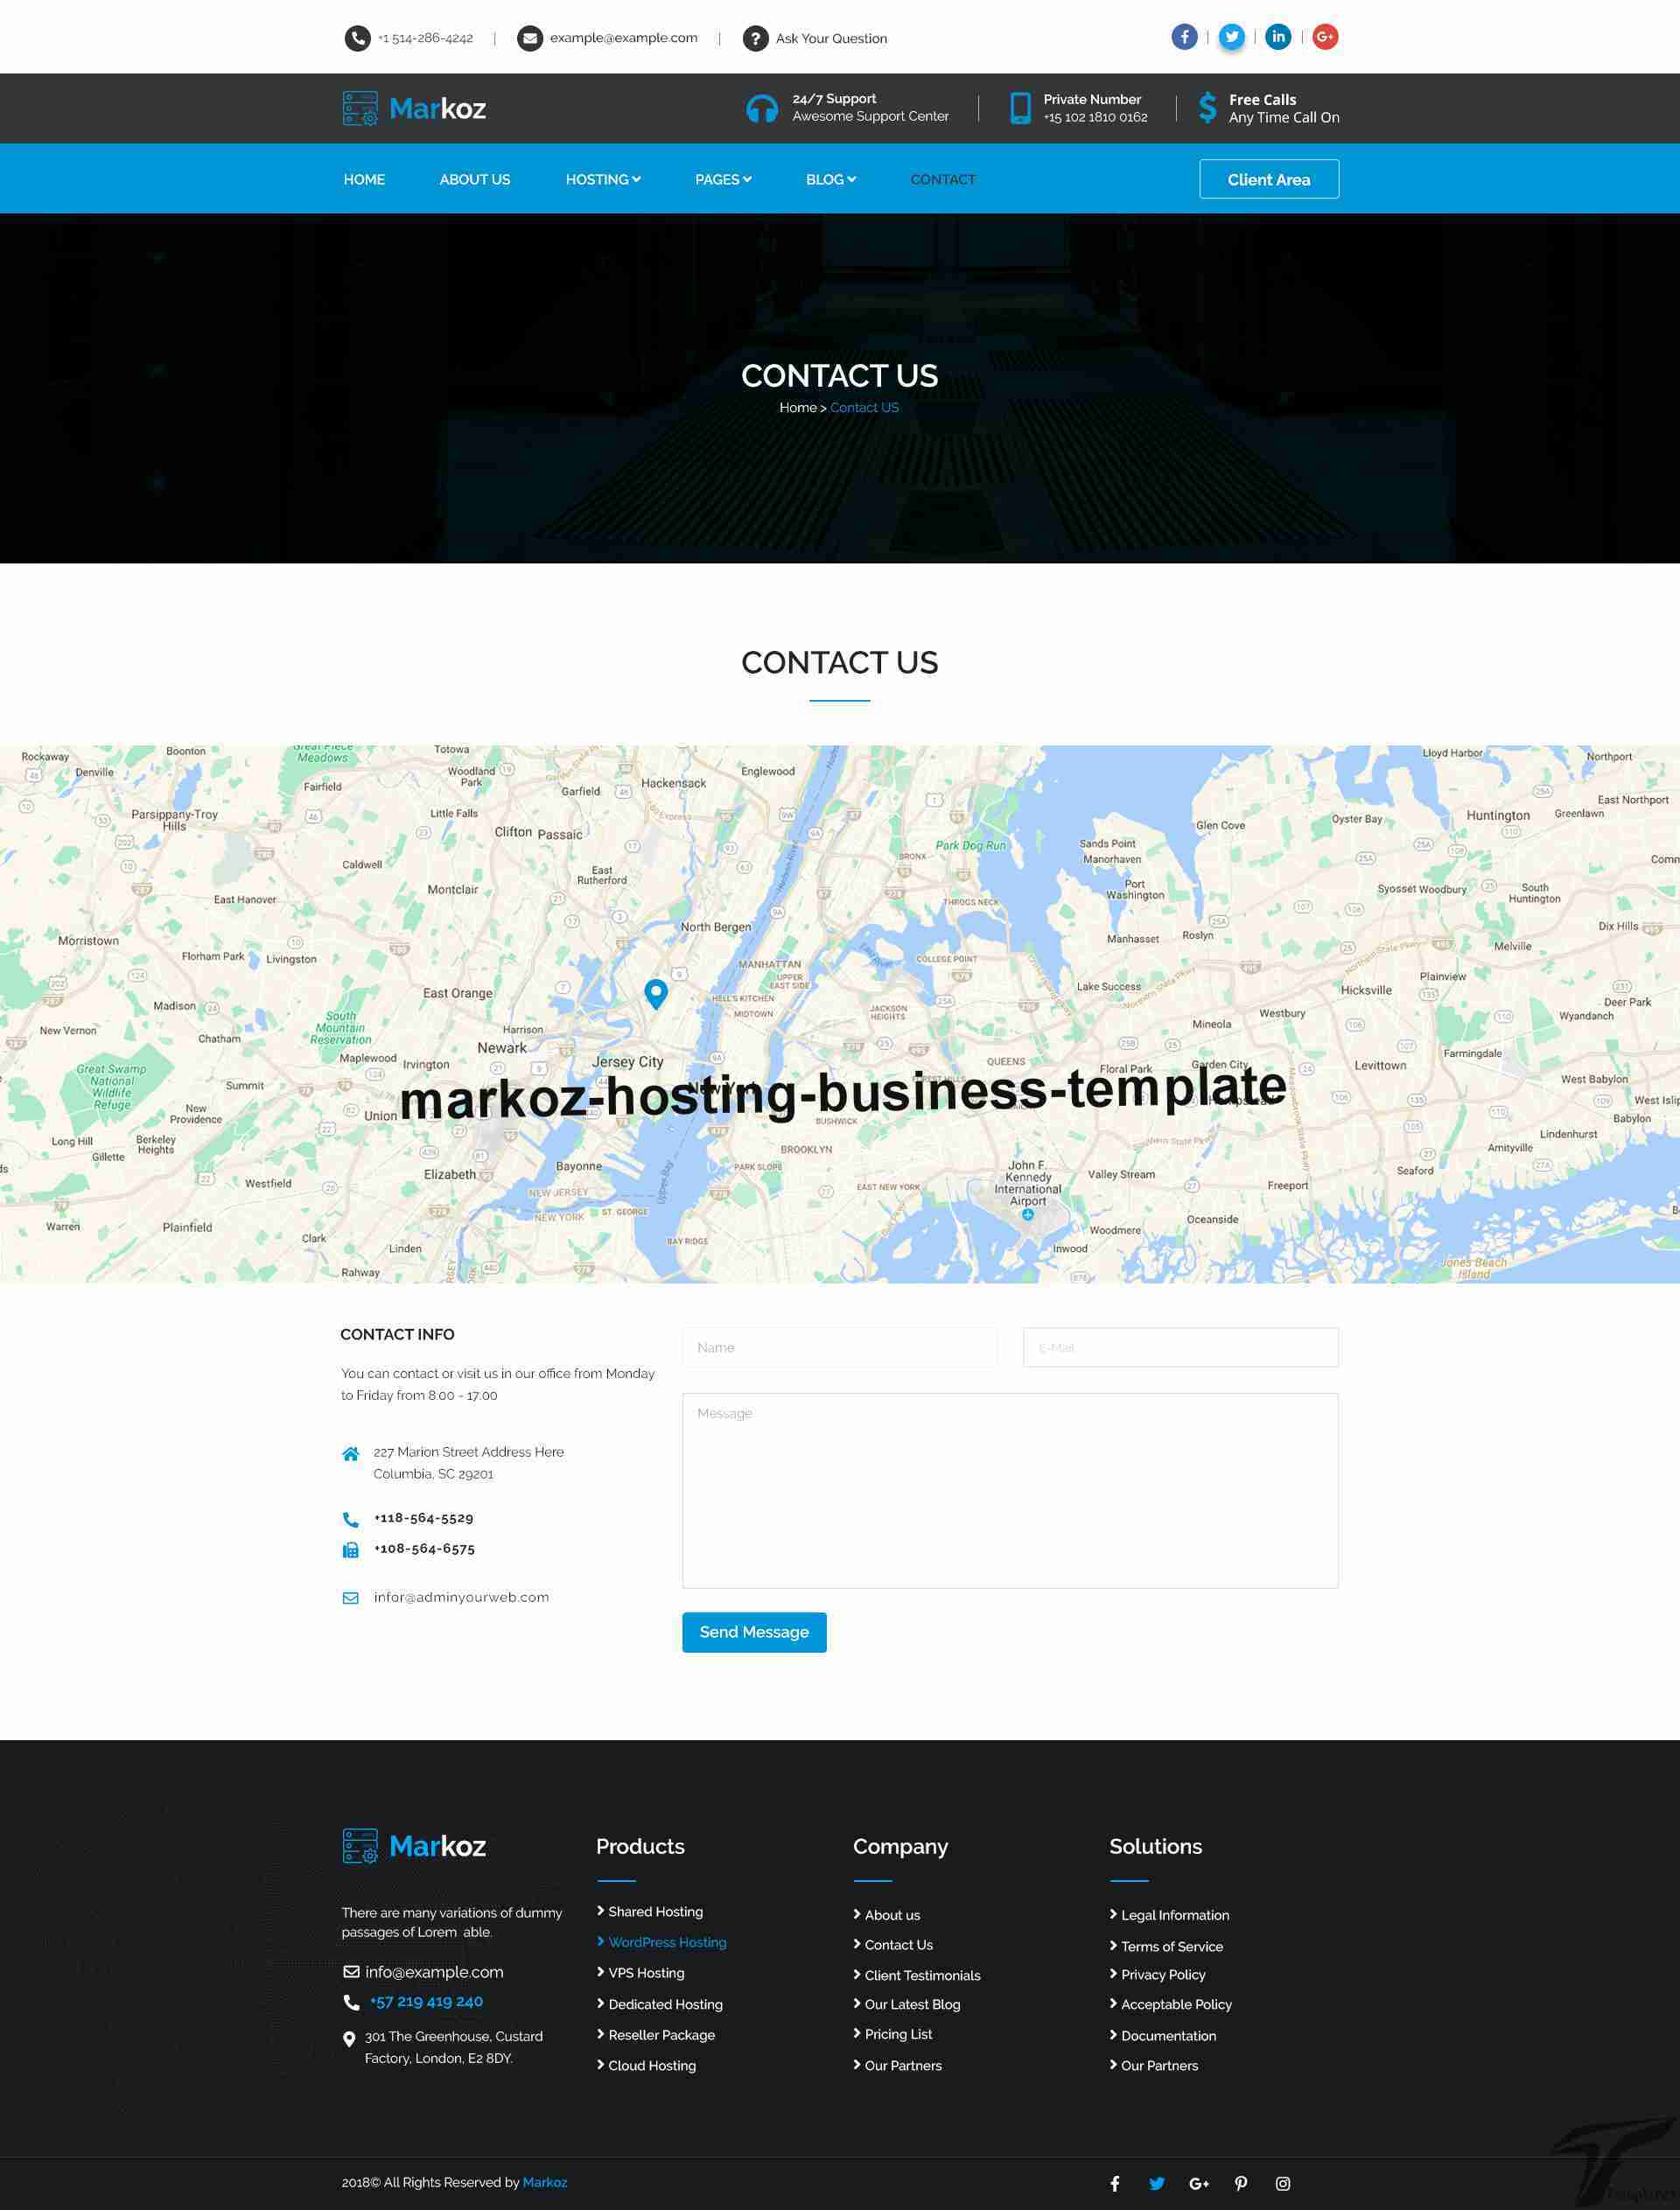 https://images.besthemes.com/images/h1_markoz-hosting-business-template12-_-250555893/12_Contact-Us-Page.jpg